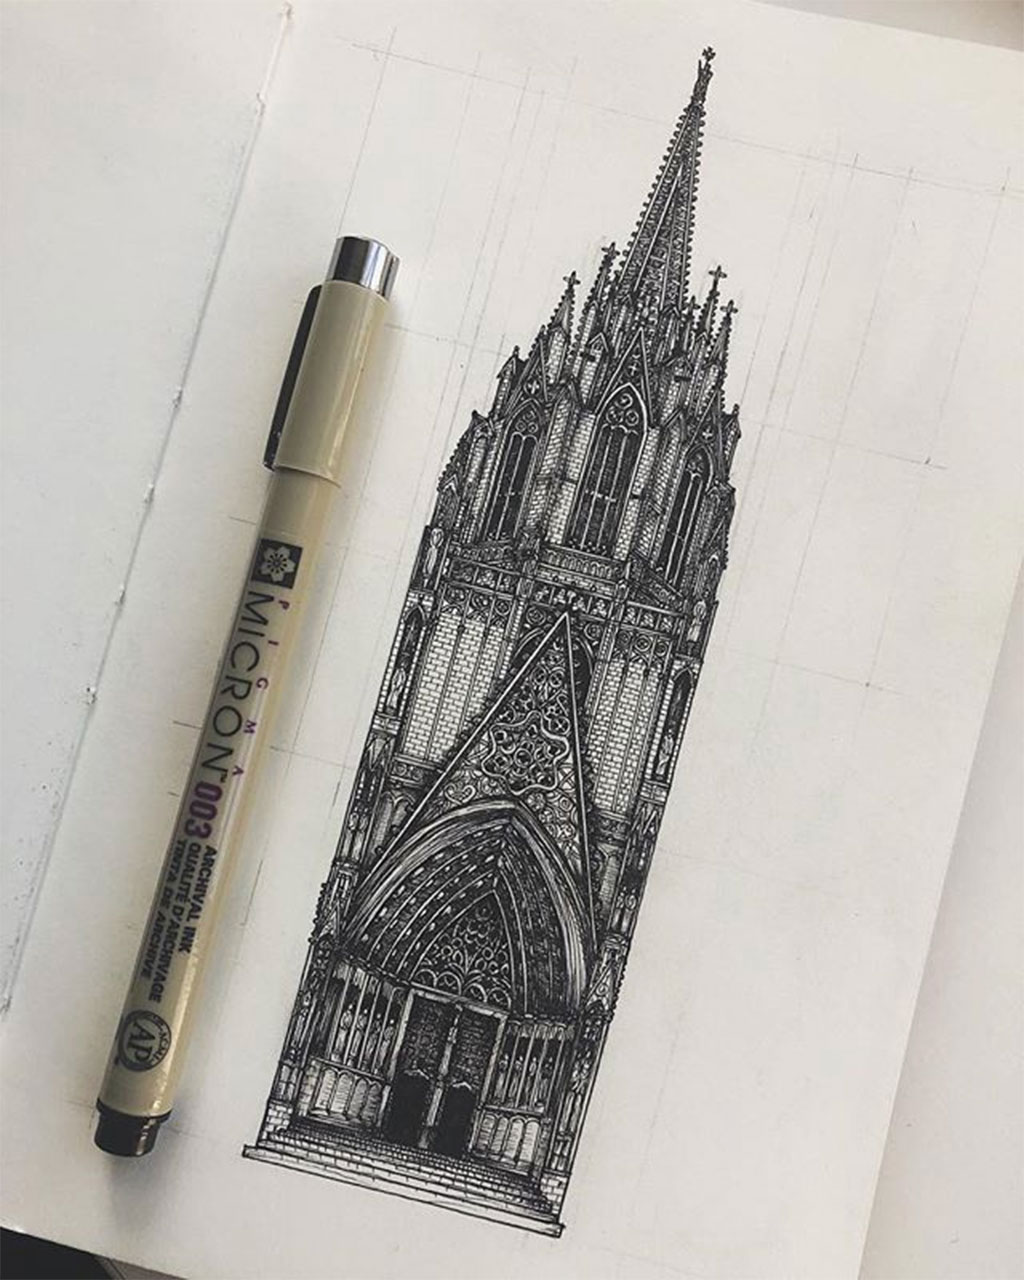 Drawing of a section of Barcelona's Cathedral